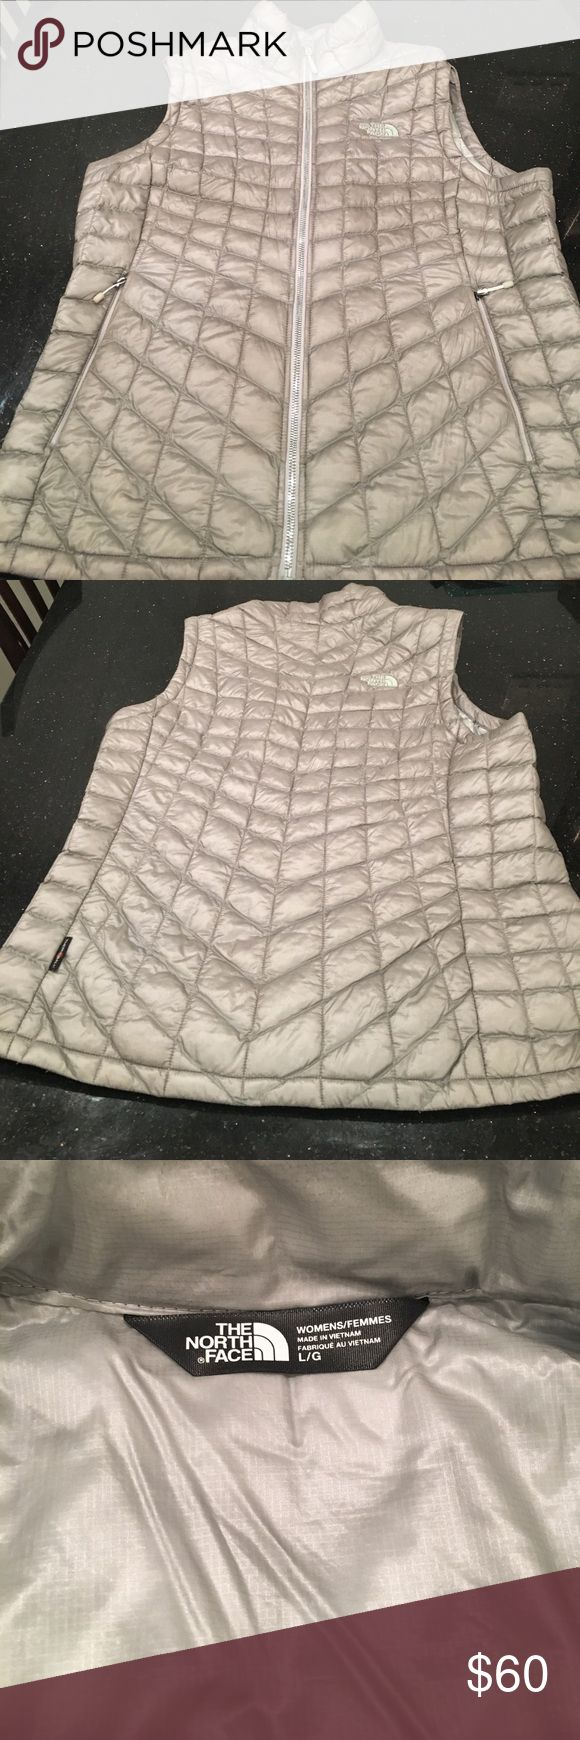 The north face thermoball silver vest The north face thermoball silver /gray vest - size large, great used condition The North Face Jackets & Coats Vests